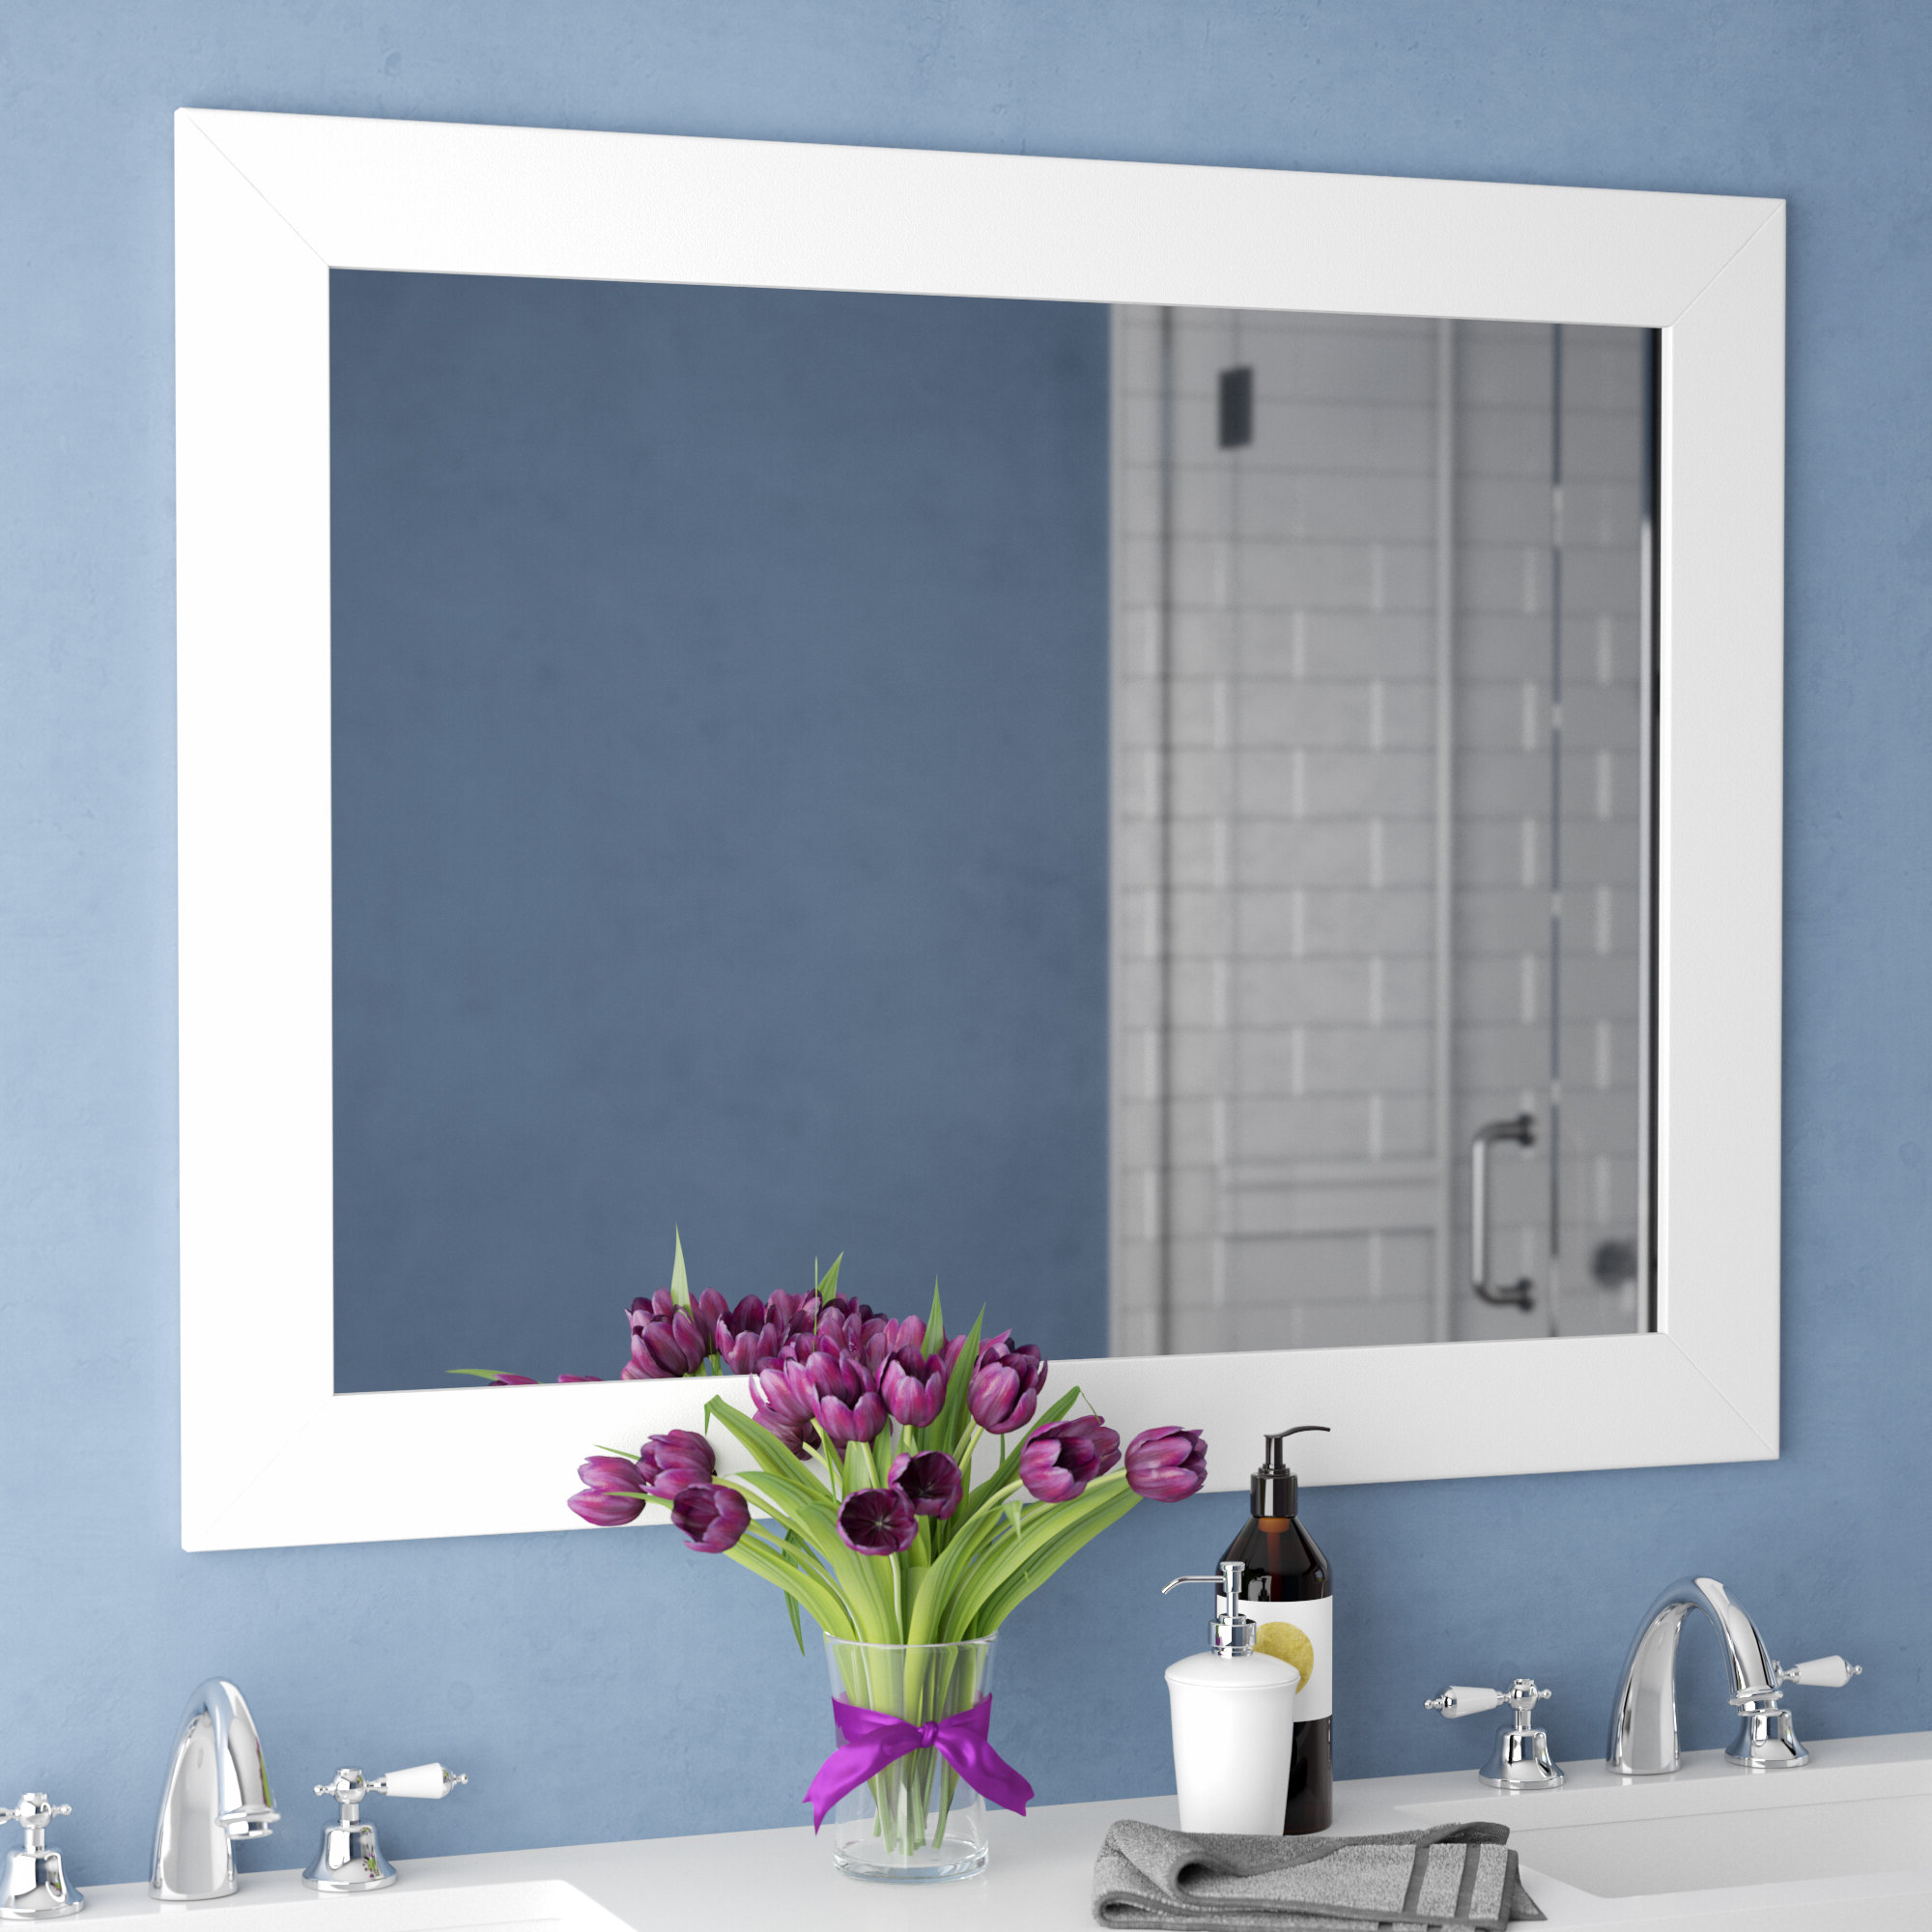 Hogge Modern Brushed Nickel Large Frame Wall Mirrors With Regard To Most Current Kanisha Bathroom/vanity Mirror (View 13 of 20)